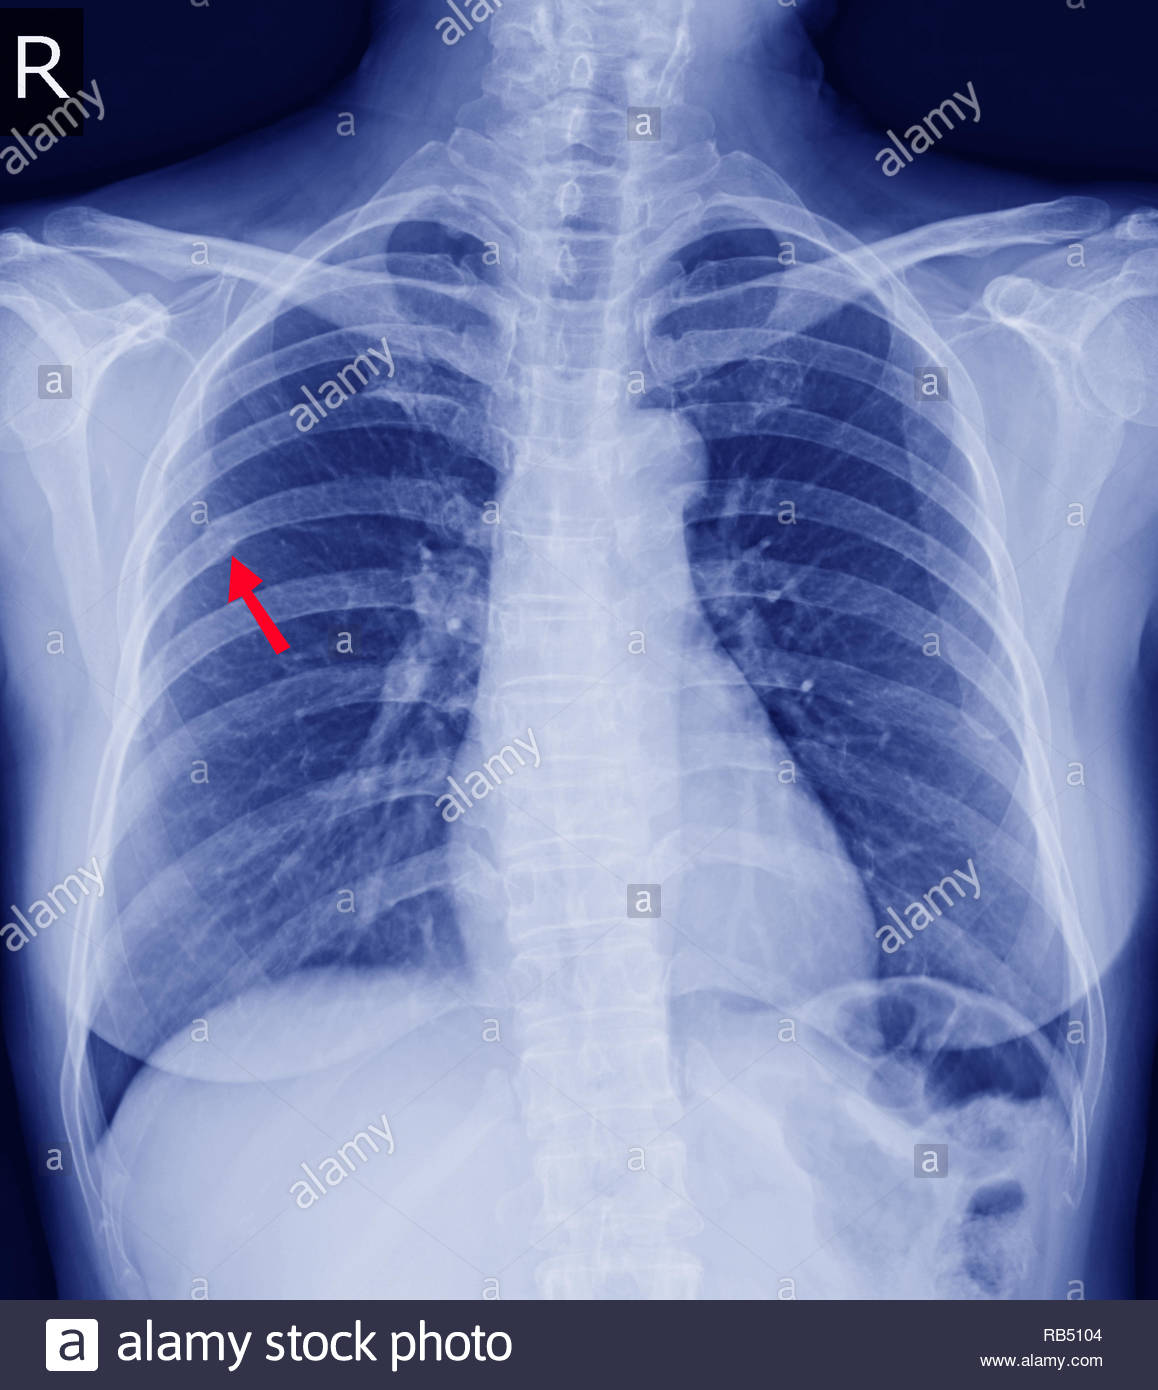 Chest x-ray Fracture right posterior 6th rib and possible fracture lateral aspect of left 9th rib.Normal heart size.No definite active pulmonary infil - Stock Image